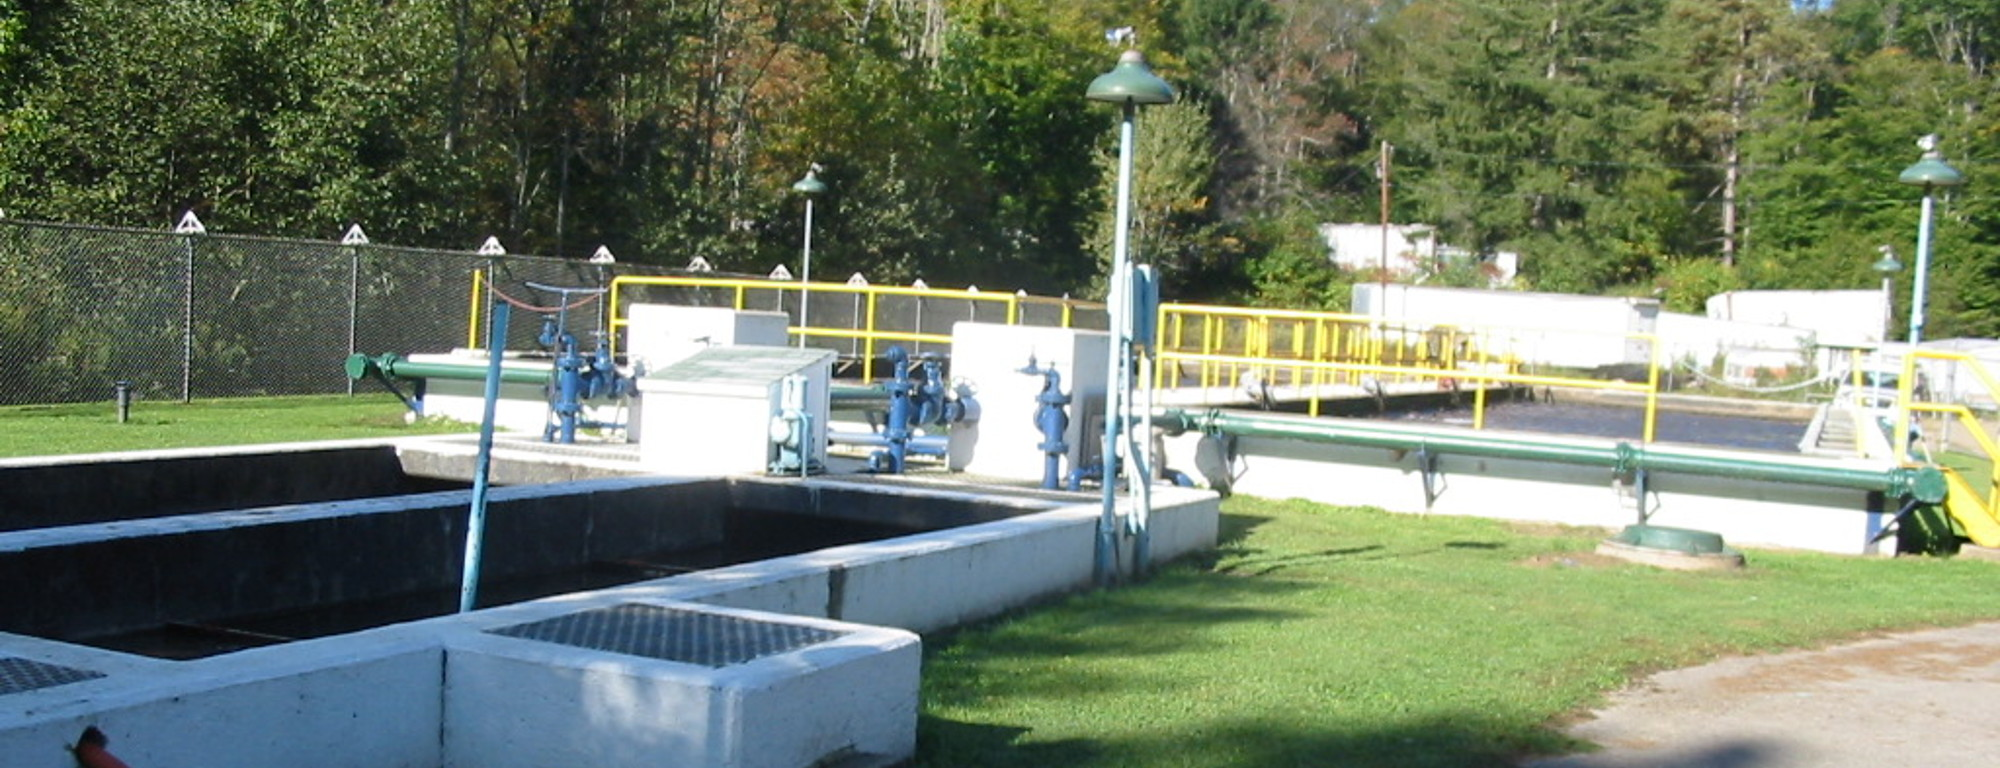 Sheffield Township Wastewater Treatment Plant